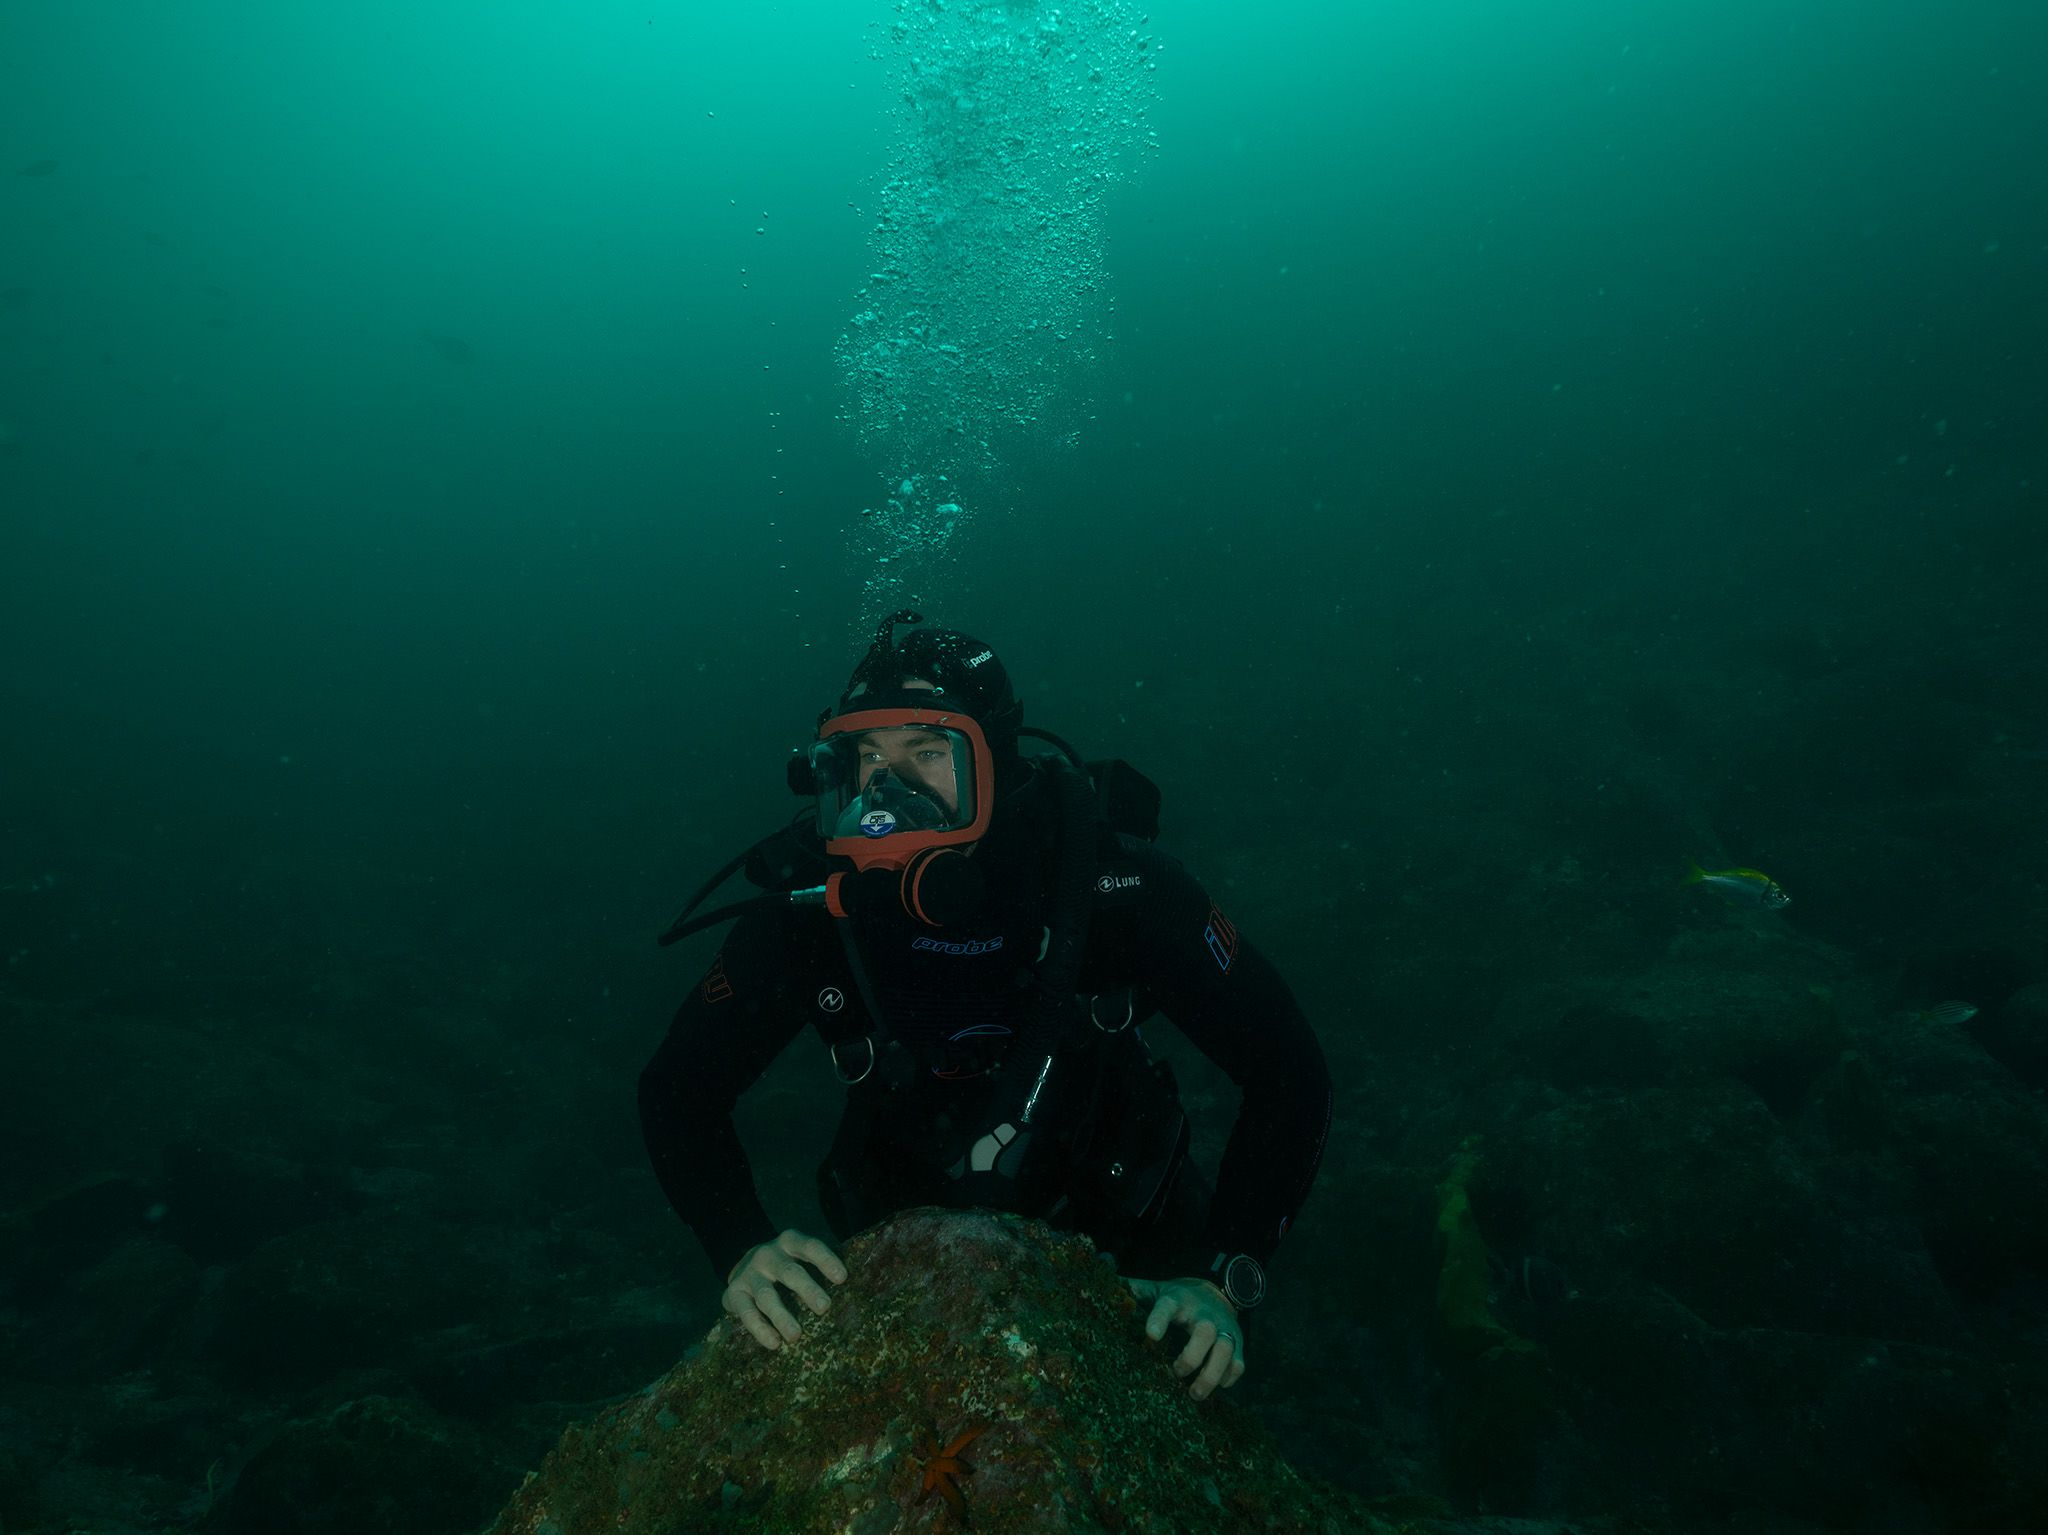 Chris Hemsworth diving at South West Rocks - Fish Rock. This is part of Shark Beach with Chris... [Photo of the day - July 2021]